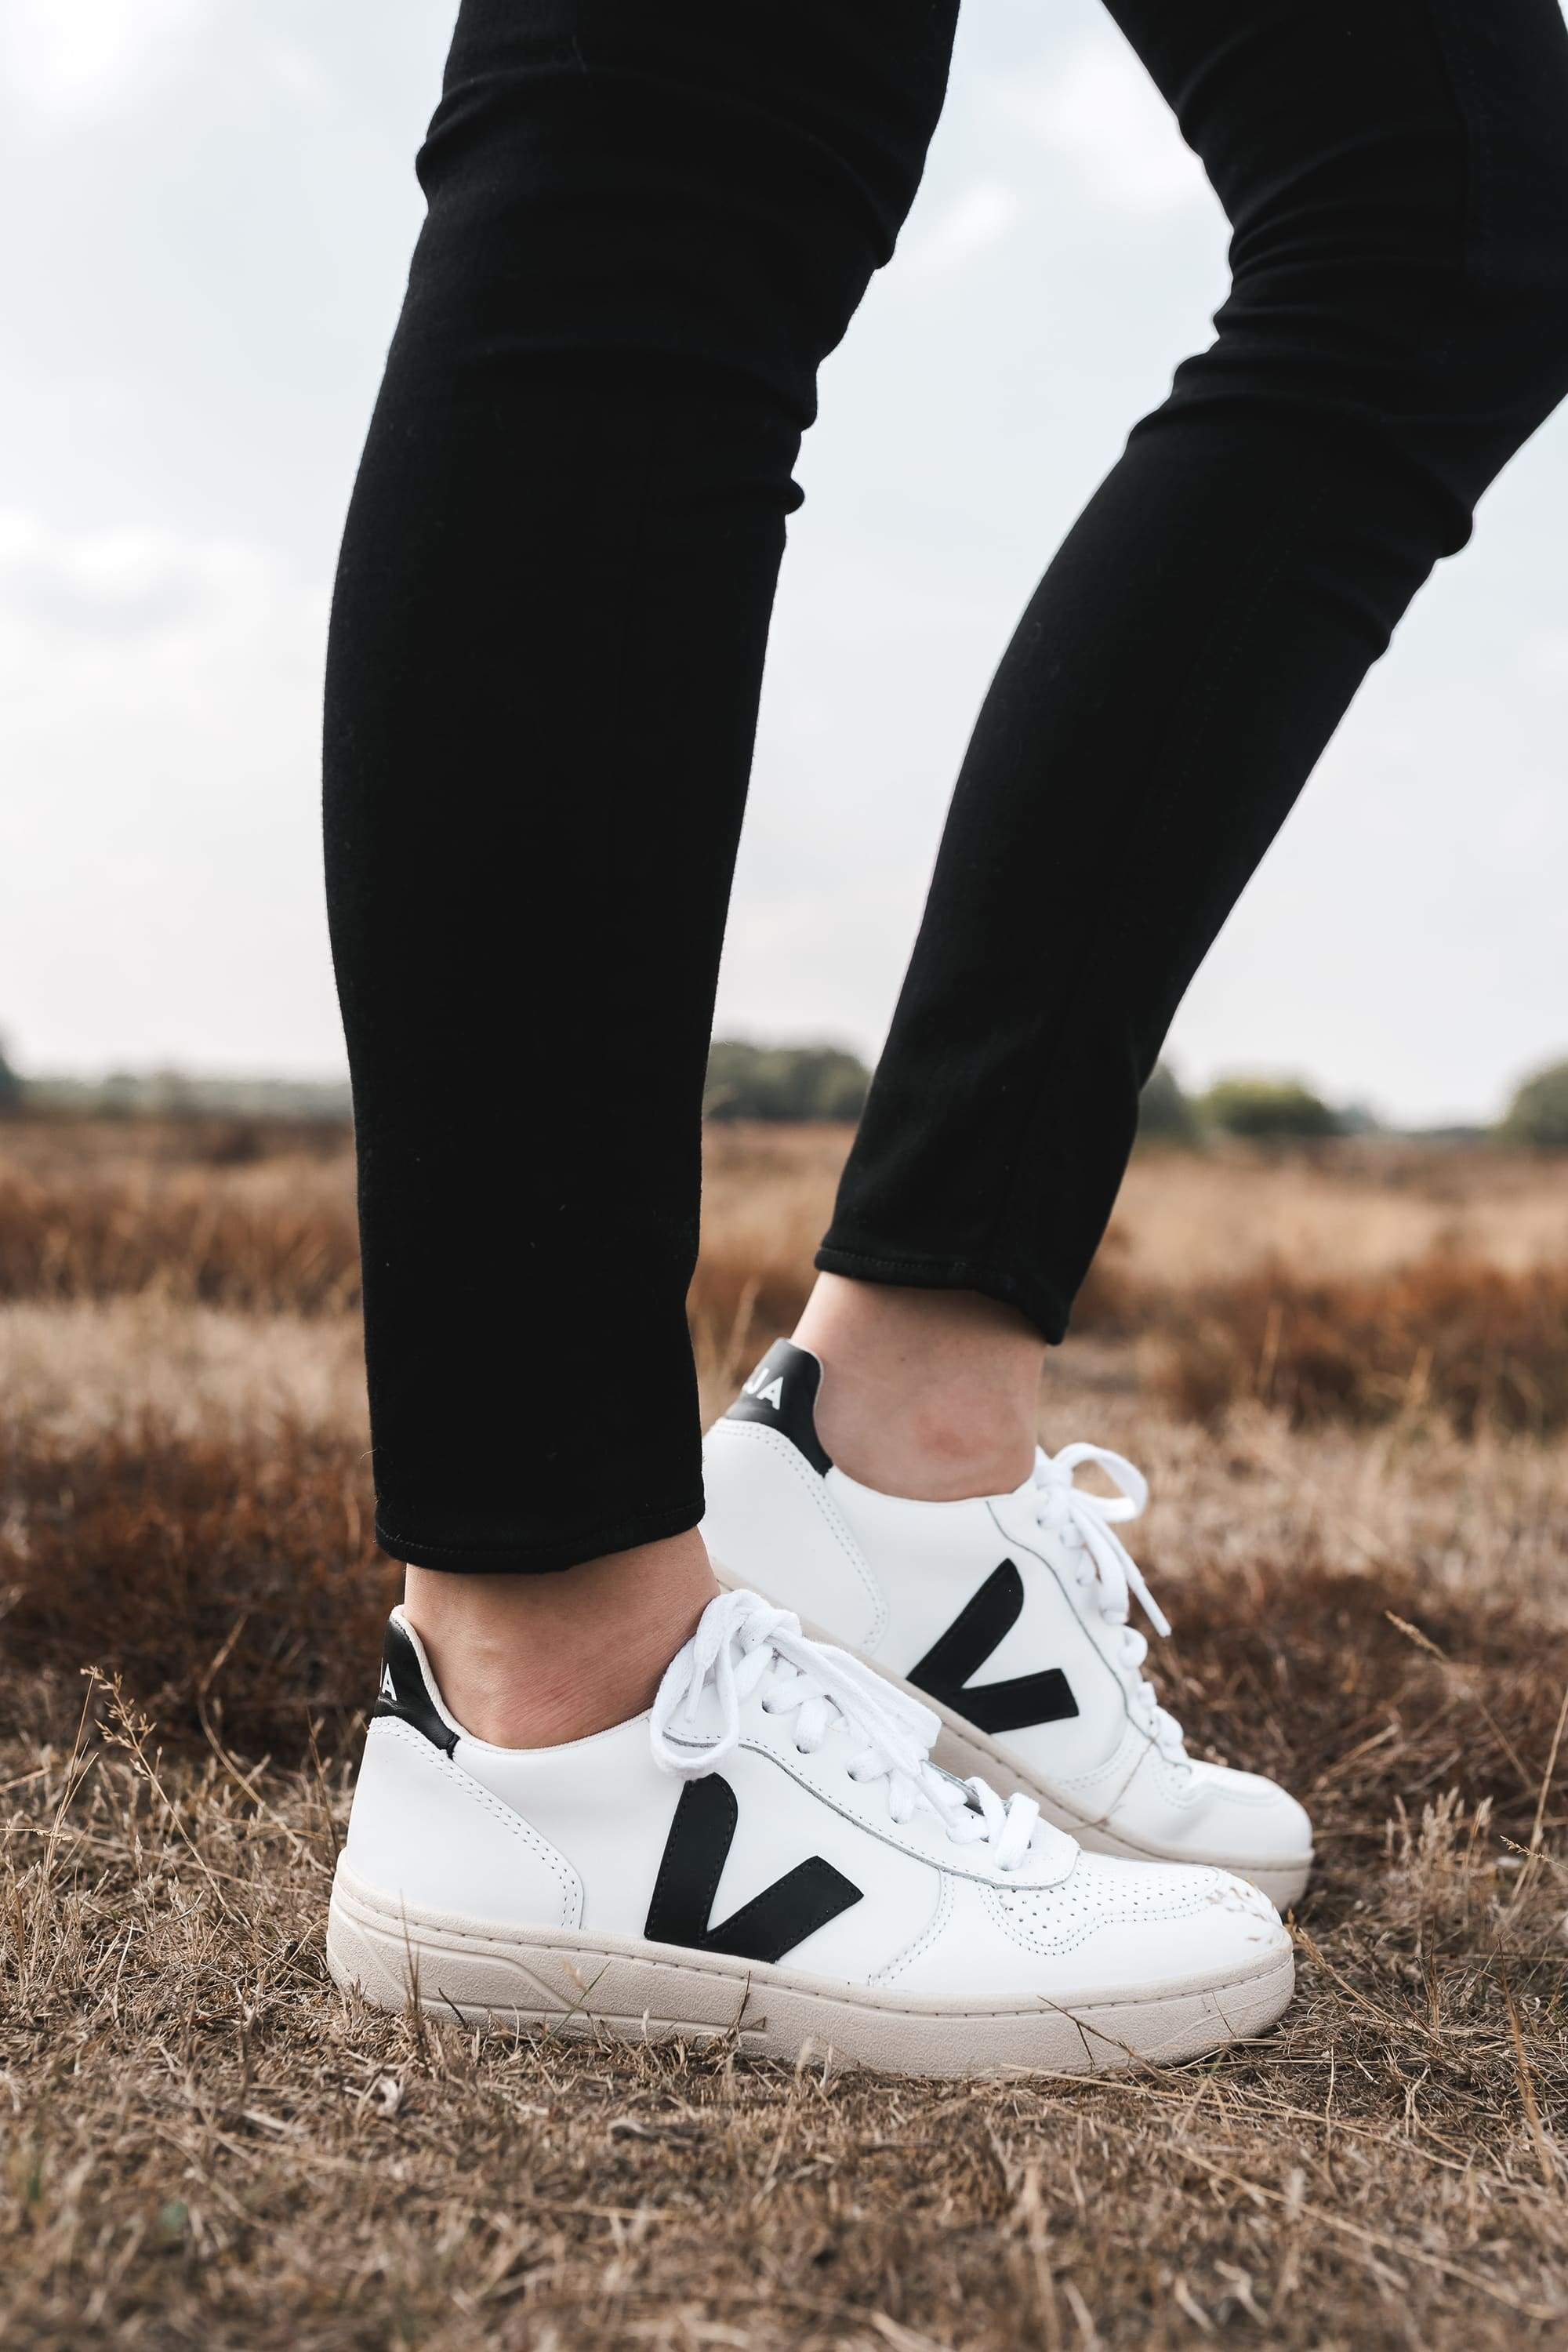 V-10 sneaker extra white black from thegreenlabels